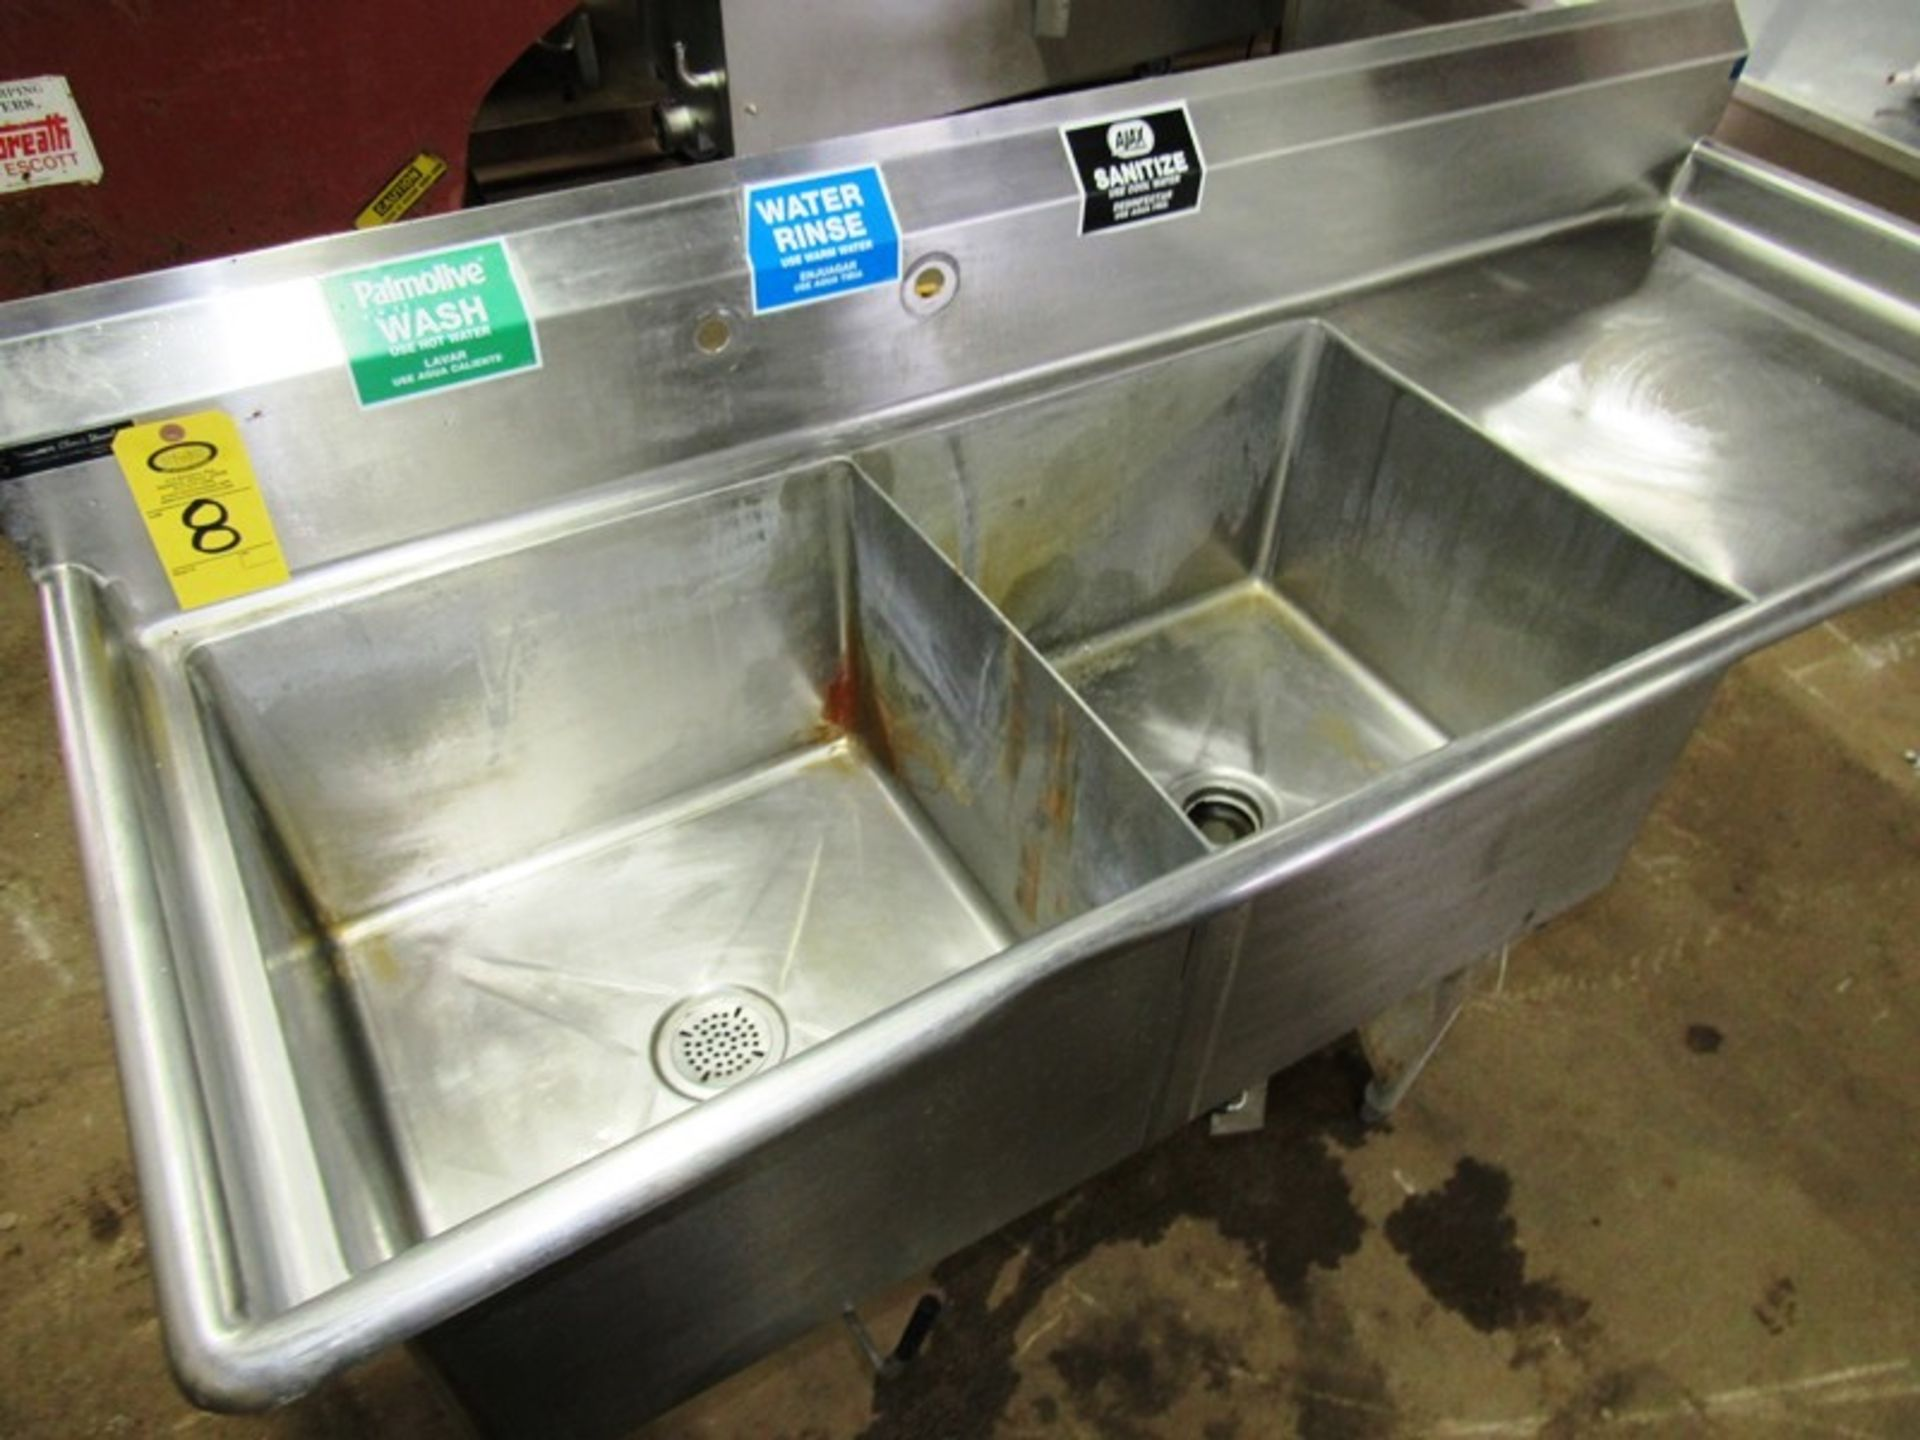 "Stainless Steel Sink, 28"" W X 6' L, (2) bays, 13"" deep, 24"" sideboard, space for faucet with sprayer - Image 2 of 4"